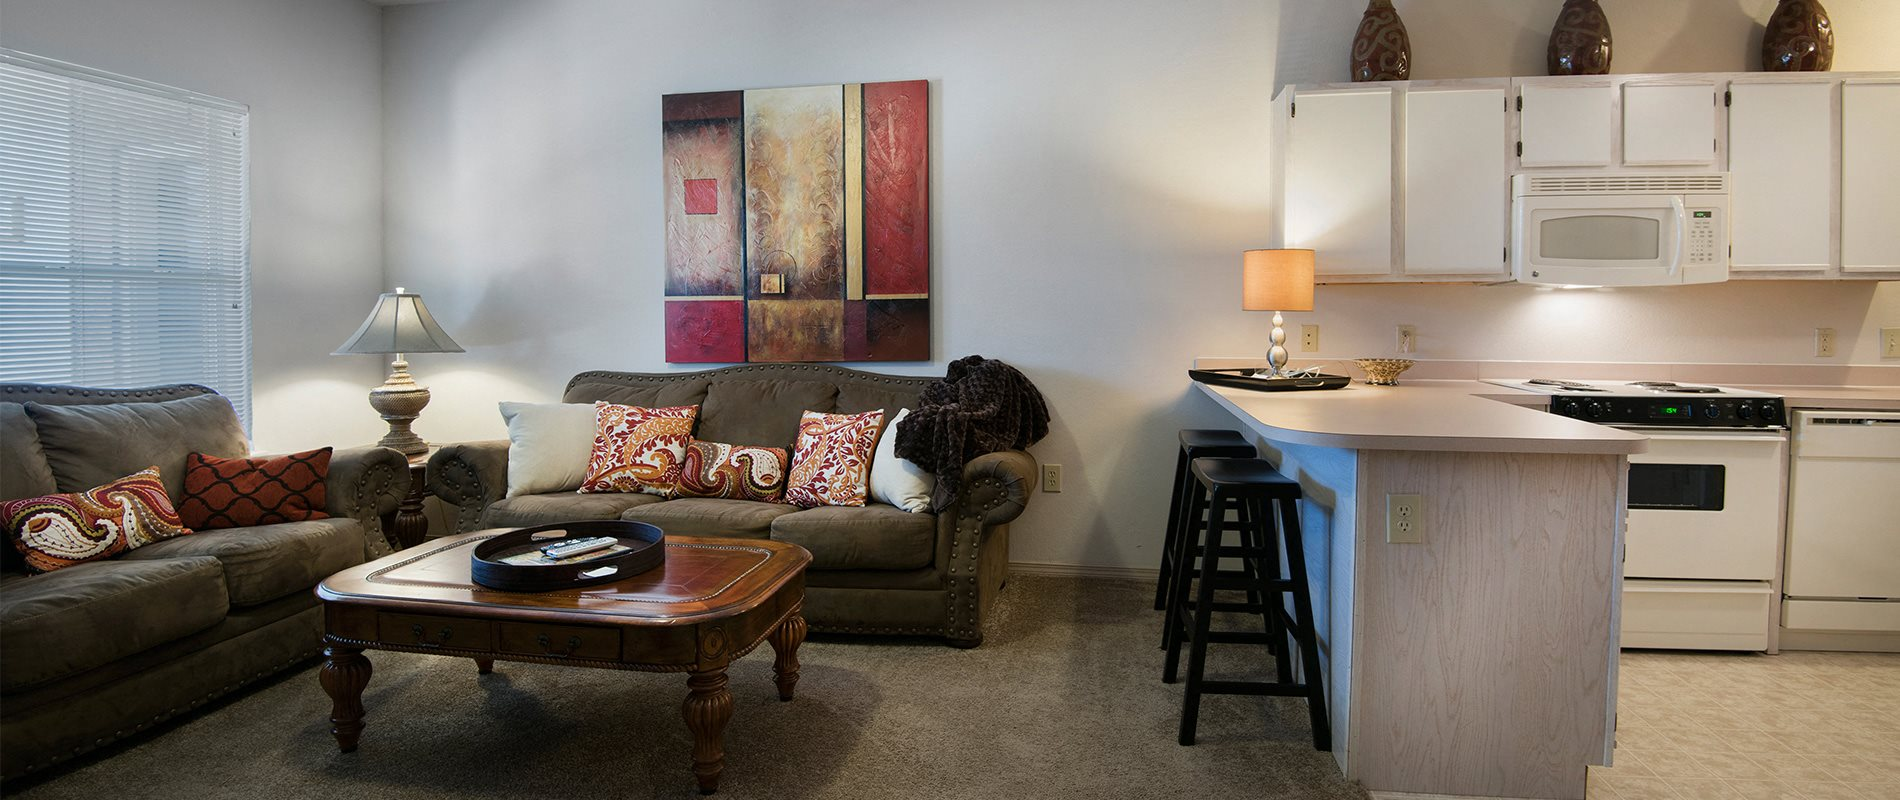 Fayetteville homepagegallery 3